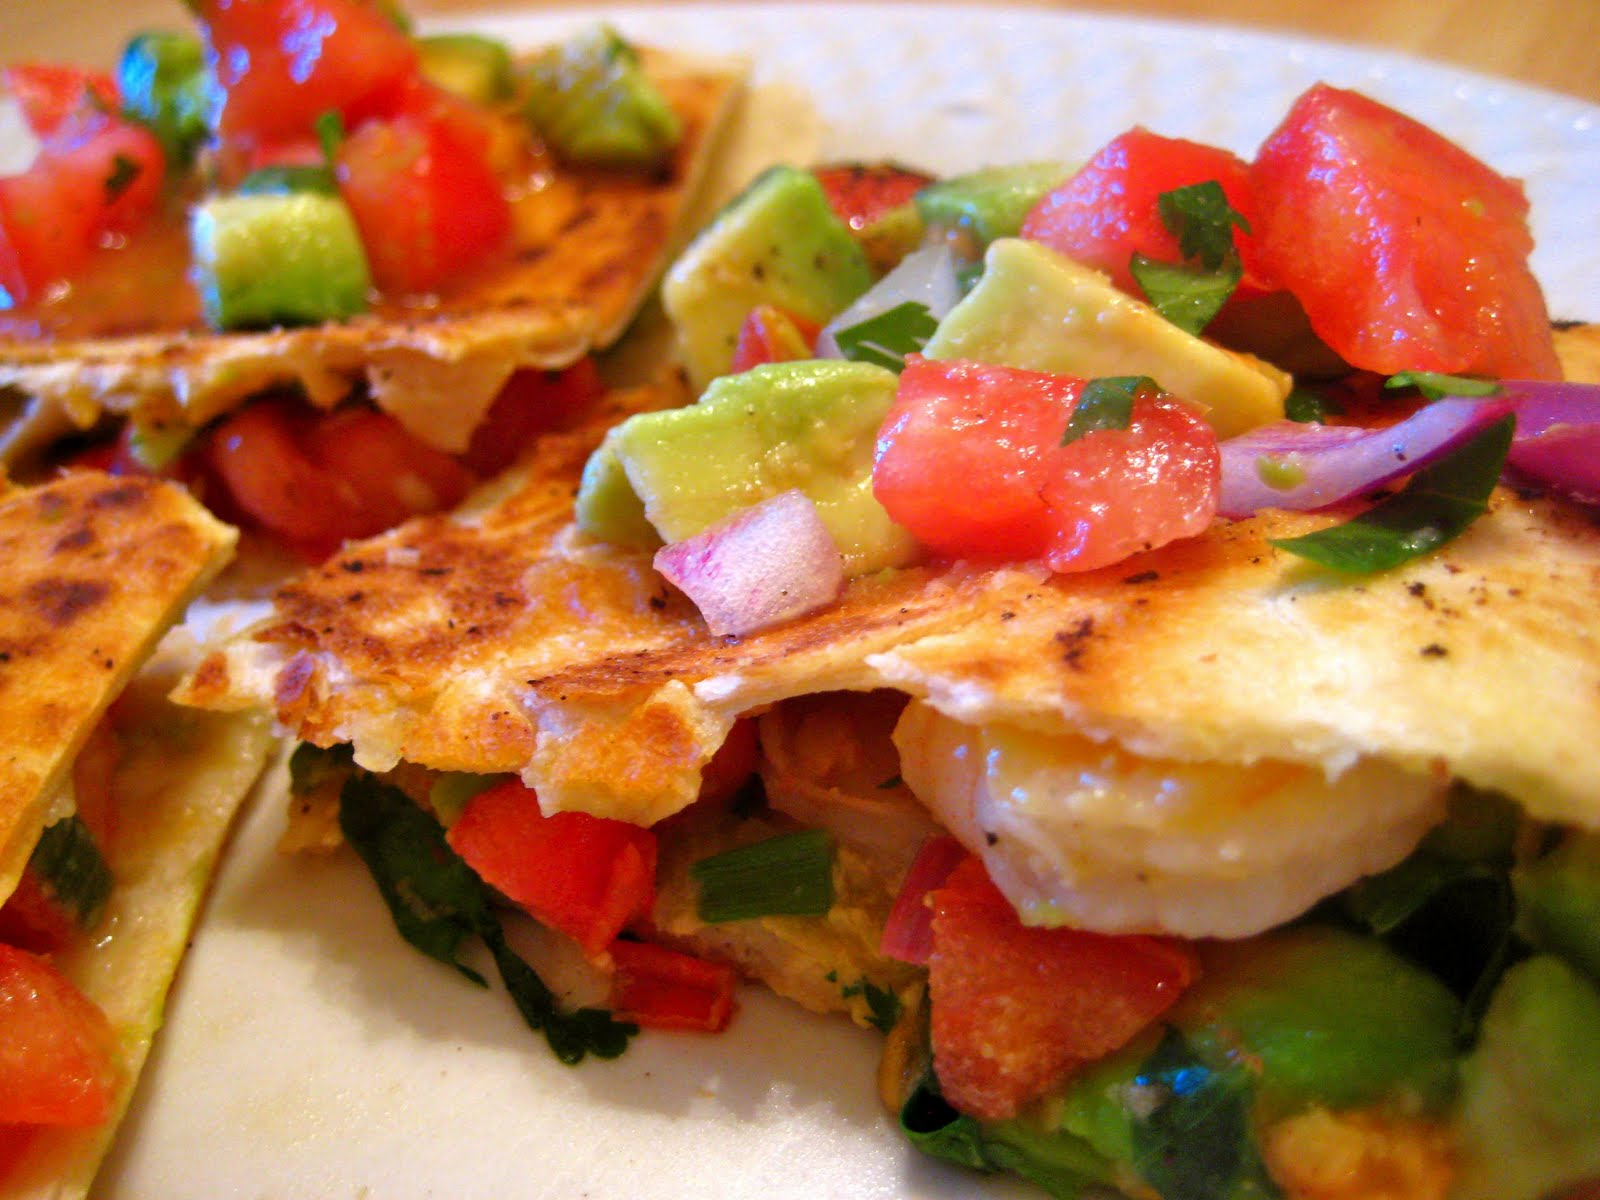 ... , still time to cook.: Shrimp Quesadillas with Tomato Avocado Salsa